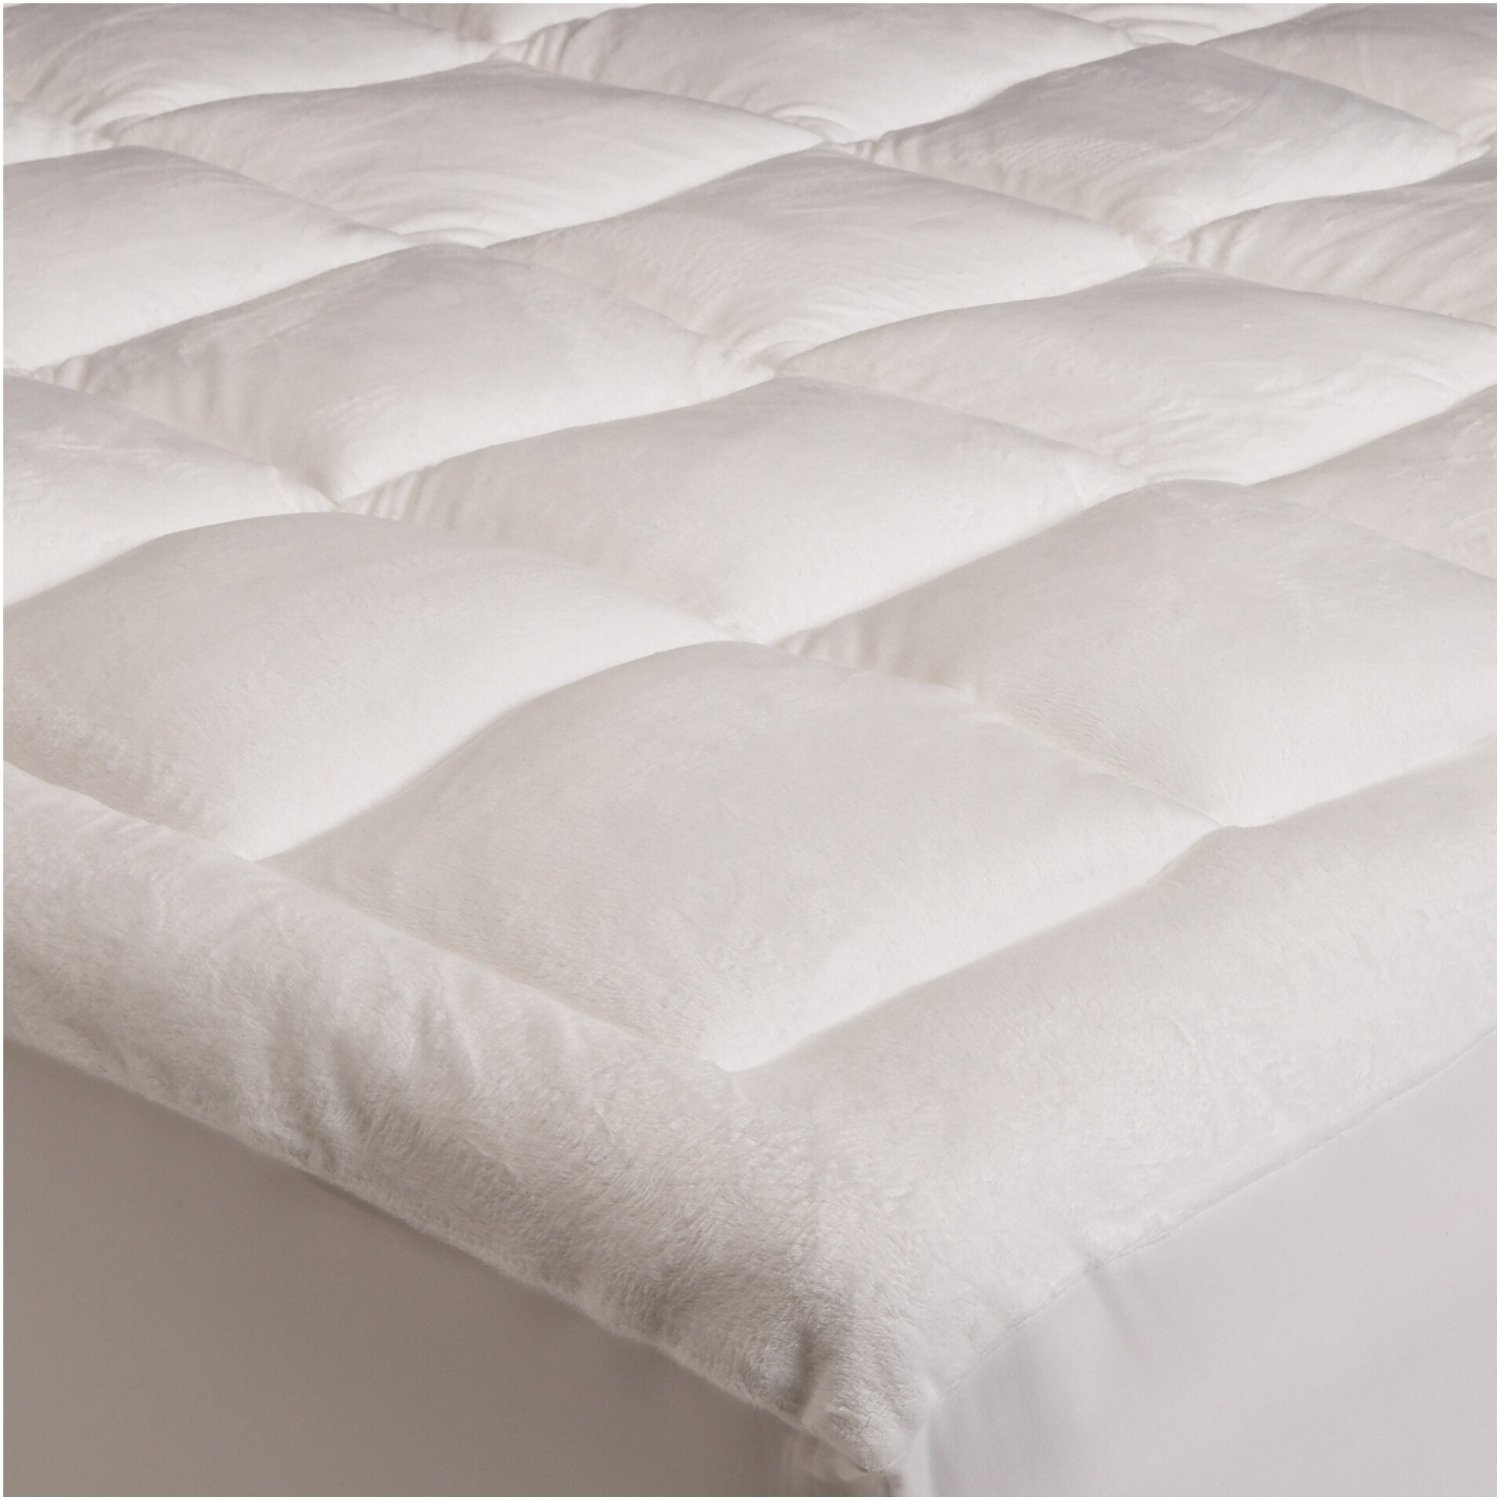 For plush comfort and support, this Queen size Super Soft Microplush Mattress Pad features a blend of generous fill and super-soft fabric. Comparable to down in its softness, the pad is made from micro plush fabric and stuffed with 50 ounces of loft-retaining polyester fill. An end-to-end box stitch design ensures even distribution of the fill, and mitered borders prevent shifting and flat spots. Sewn with deep pockets and a fully elasticized edge, the pad doubles as a mattress topper and a mattress protector, and it fits deep mattresses like pillow-tops. Comes in a choice of sizes for outfitting every bed in house. The Queen-size pad is imported and measures 60 by 80 inches. For best results, professional washing/cleaning or dry clean only recommended